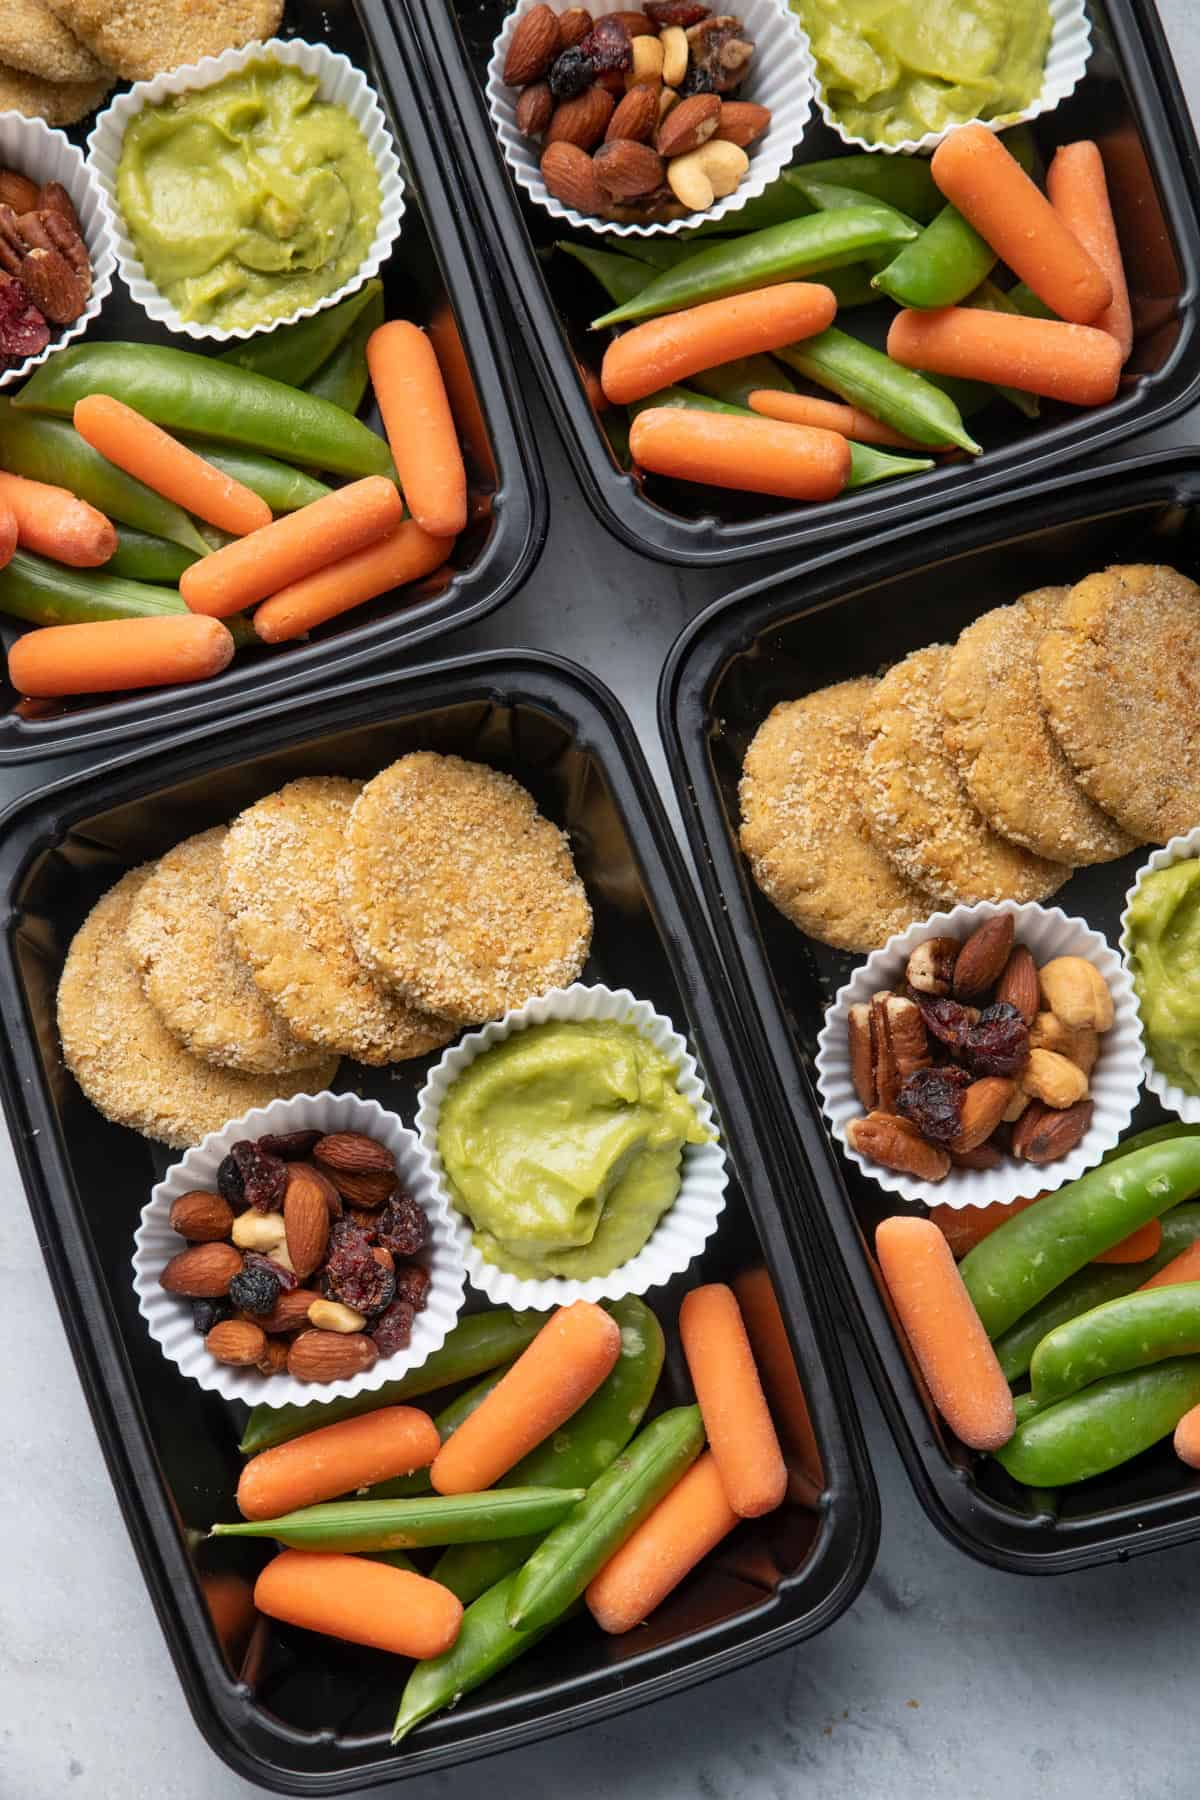 Meal prep containers with chickpea bites and avocado